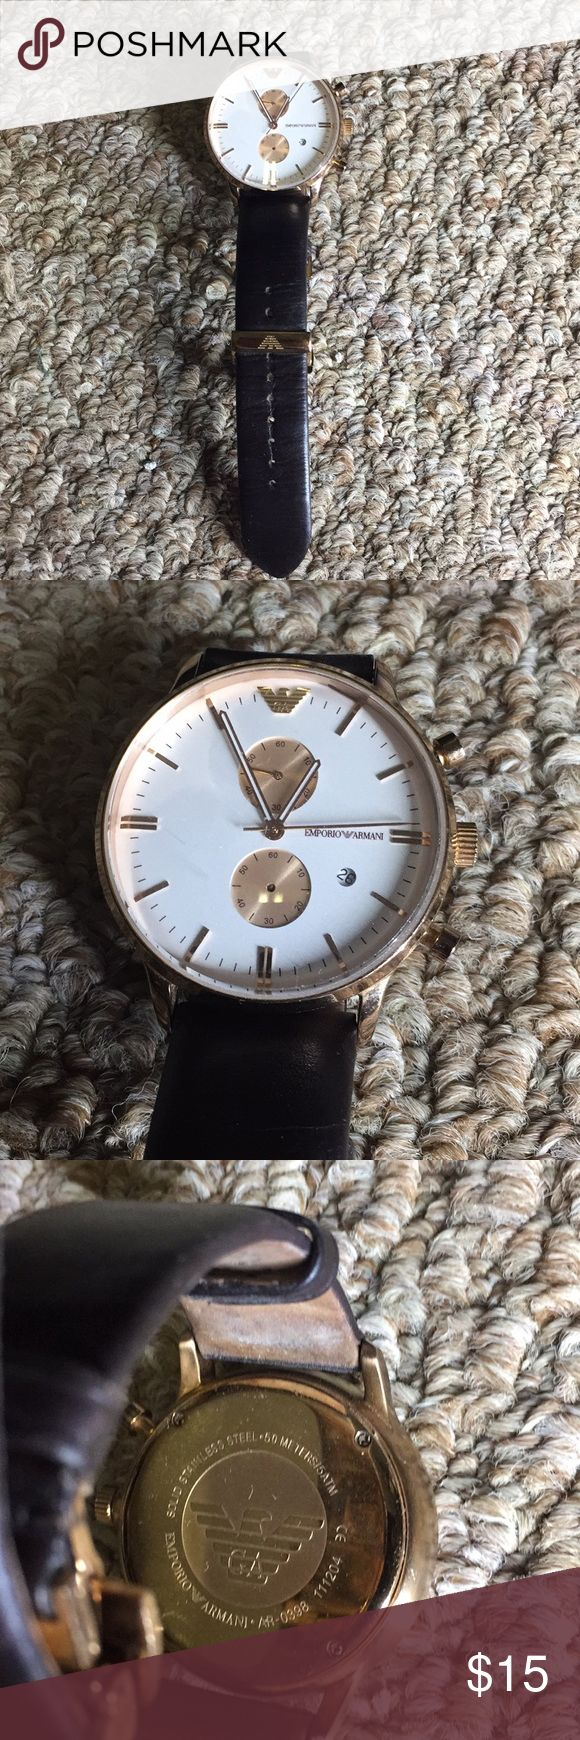 EMPORIO ARMANI Gold/White/Brown Mens Watch Leather EMPORIO ARMANI Watch Gold/White/Brown Men's Leather Band Works New Battery 4/10 Condition Hard to clasp. Hand on bottom dial missing? Worn Glass clean, minus a few scuffs.  *Please double check photos before purchase.*  Check my closet for similar styles. Emporio Armani Accessories Watches